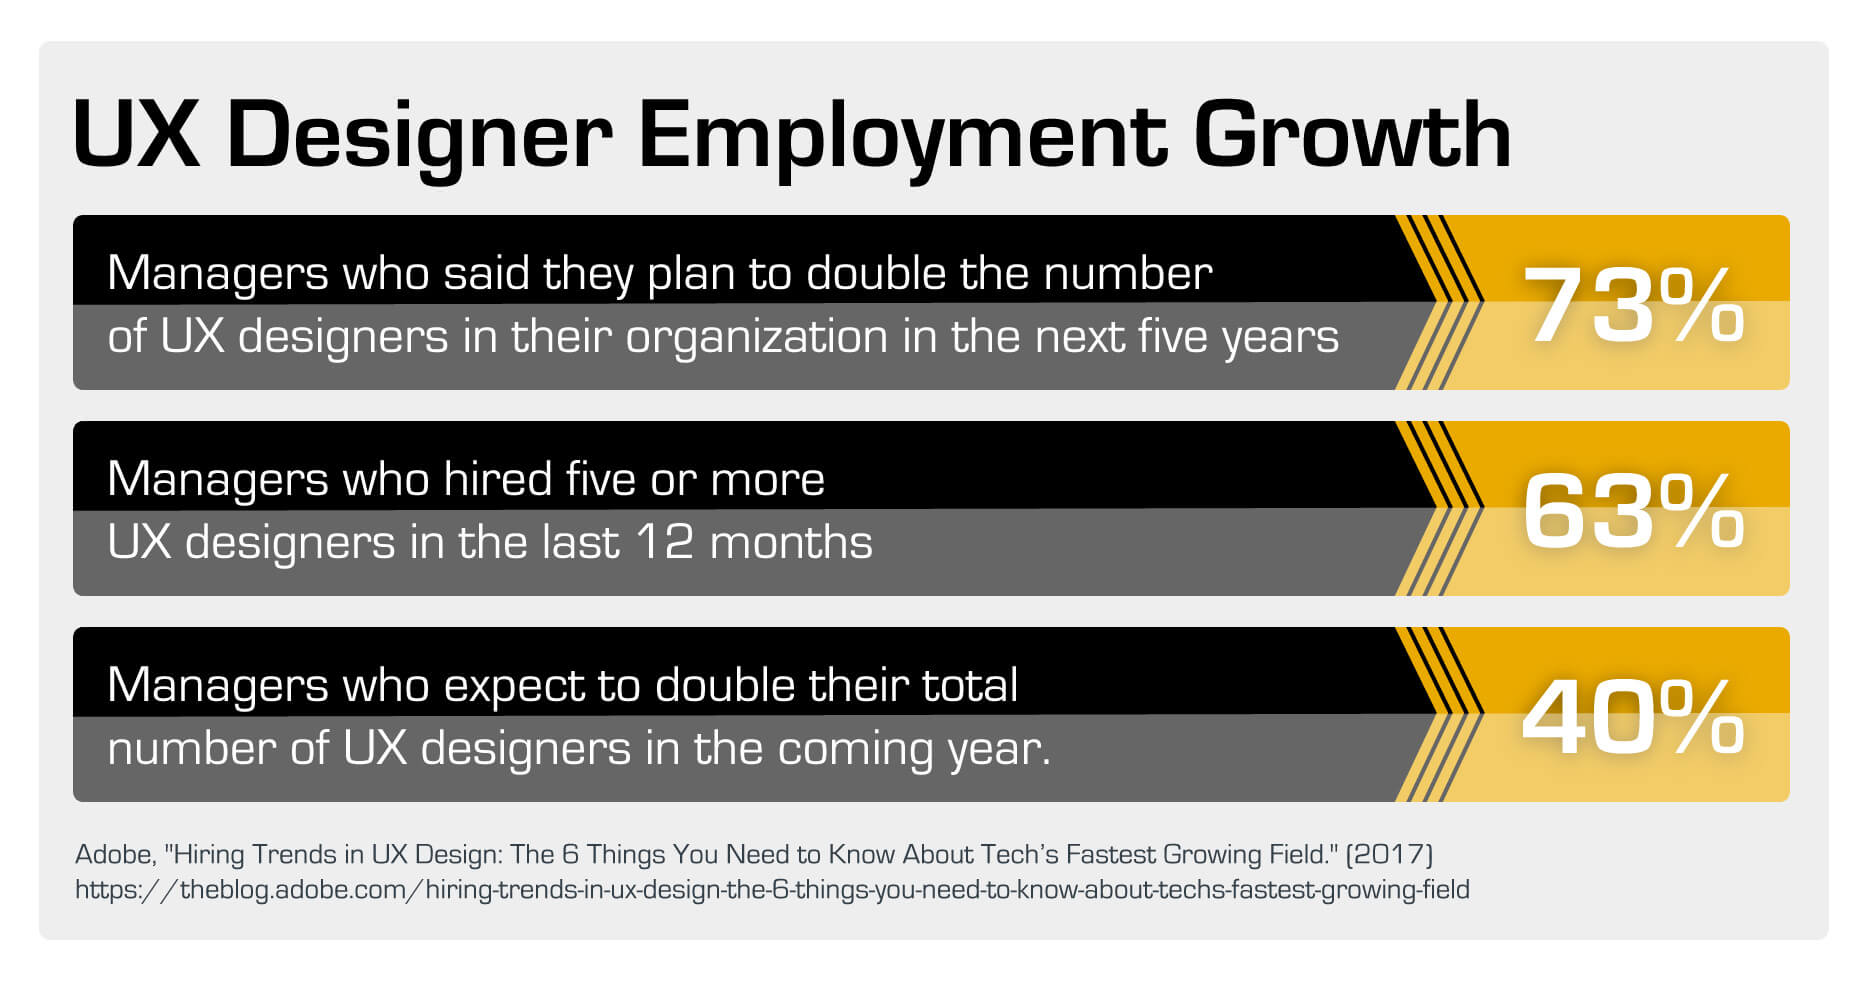 Chart showing the growth in UX designer employment